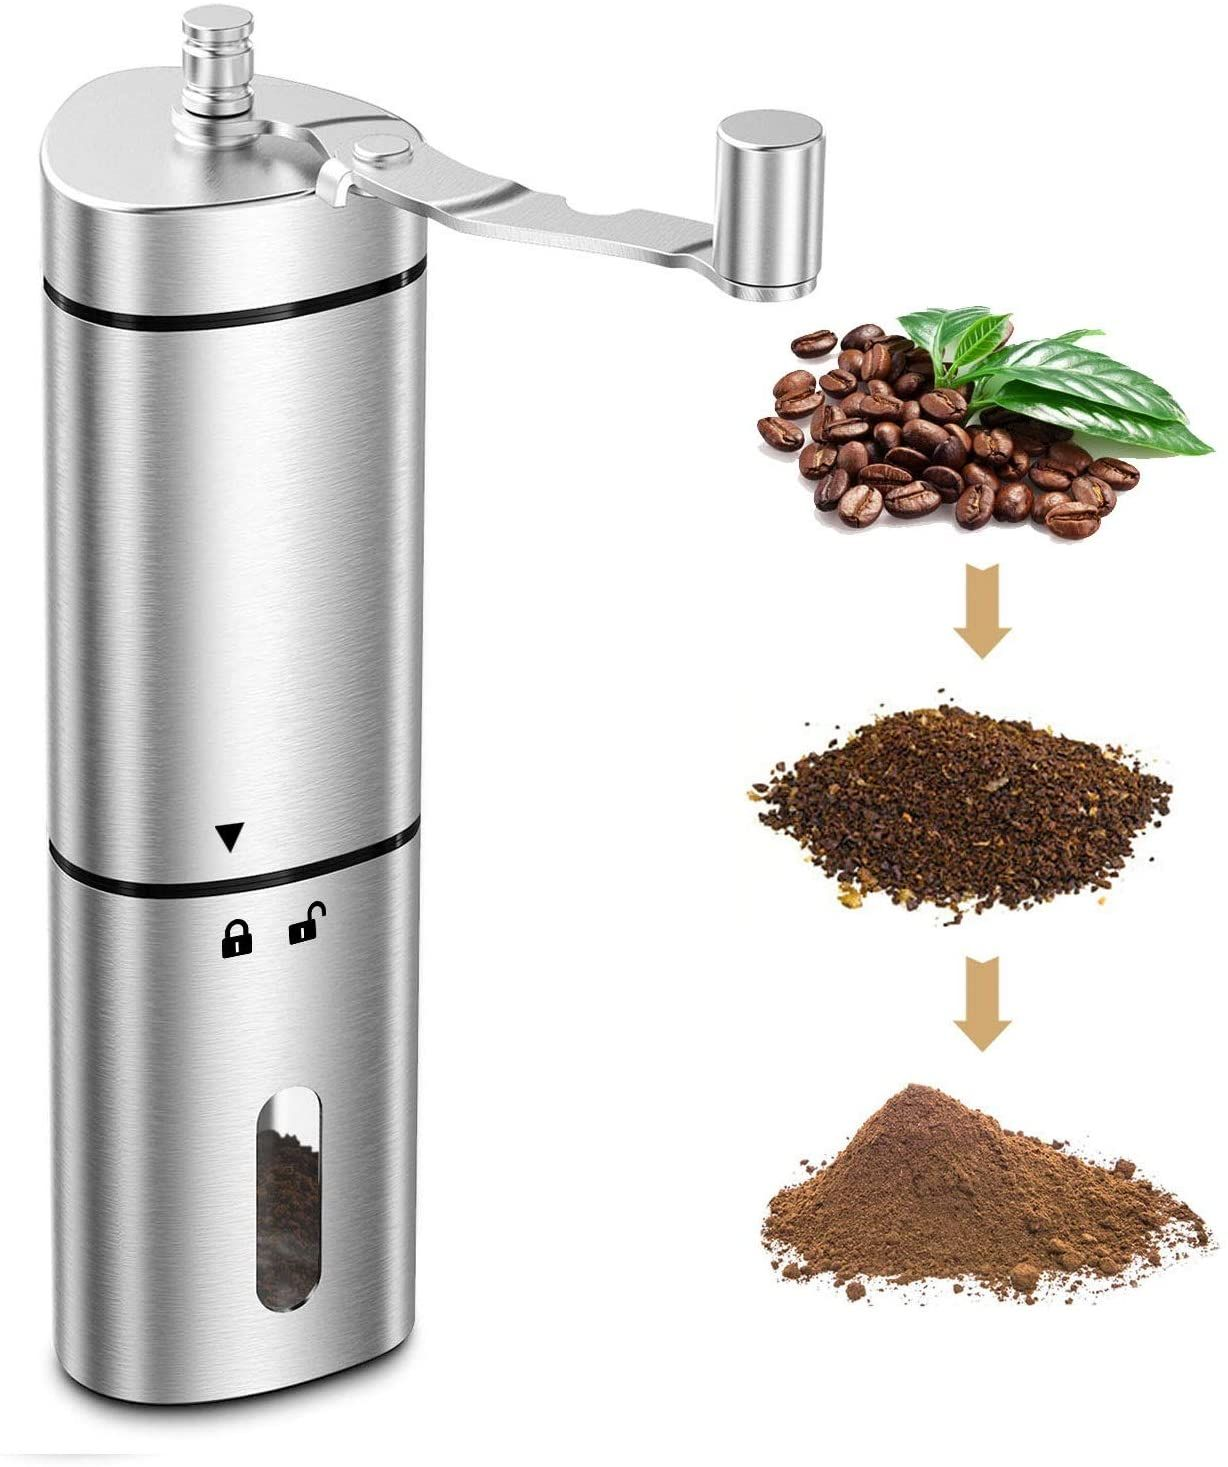 Price20.99 Best Comsoon Manual Coffee Grinder, Portable